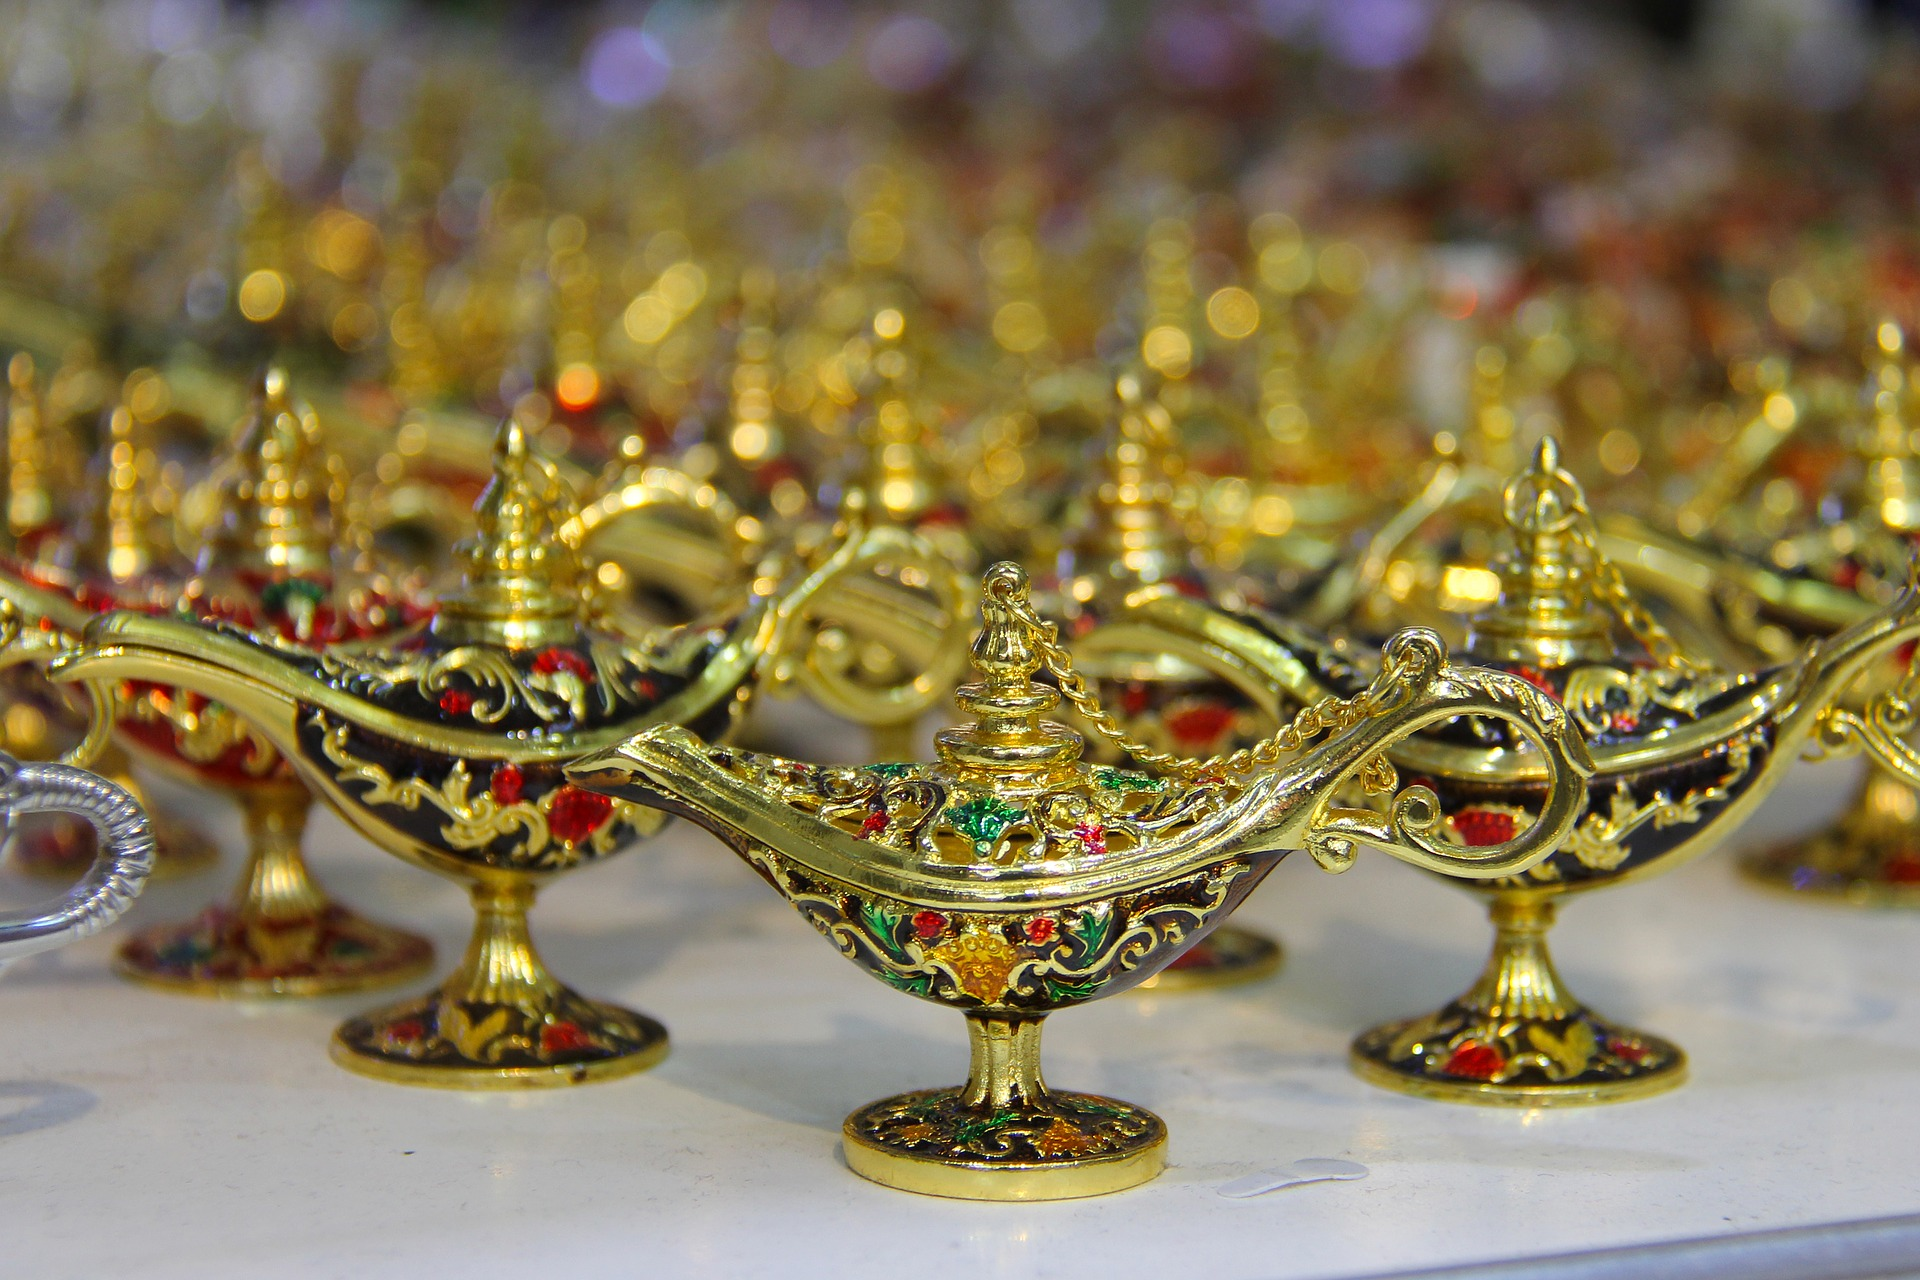 Image of gold lamps in the UAE